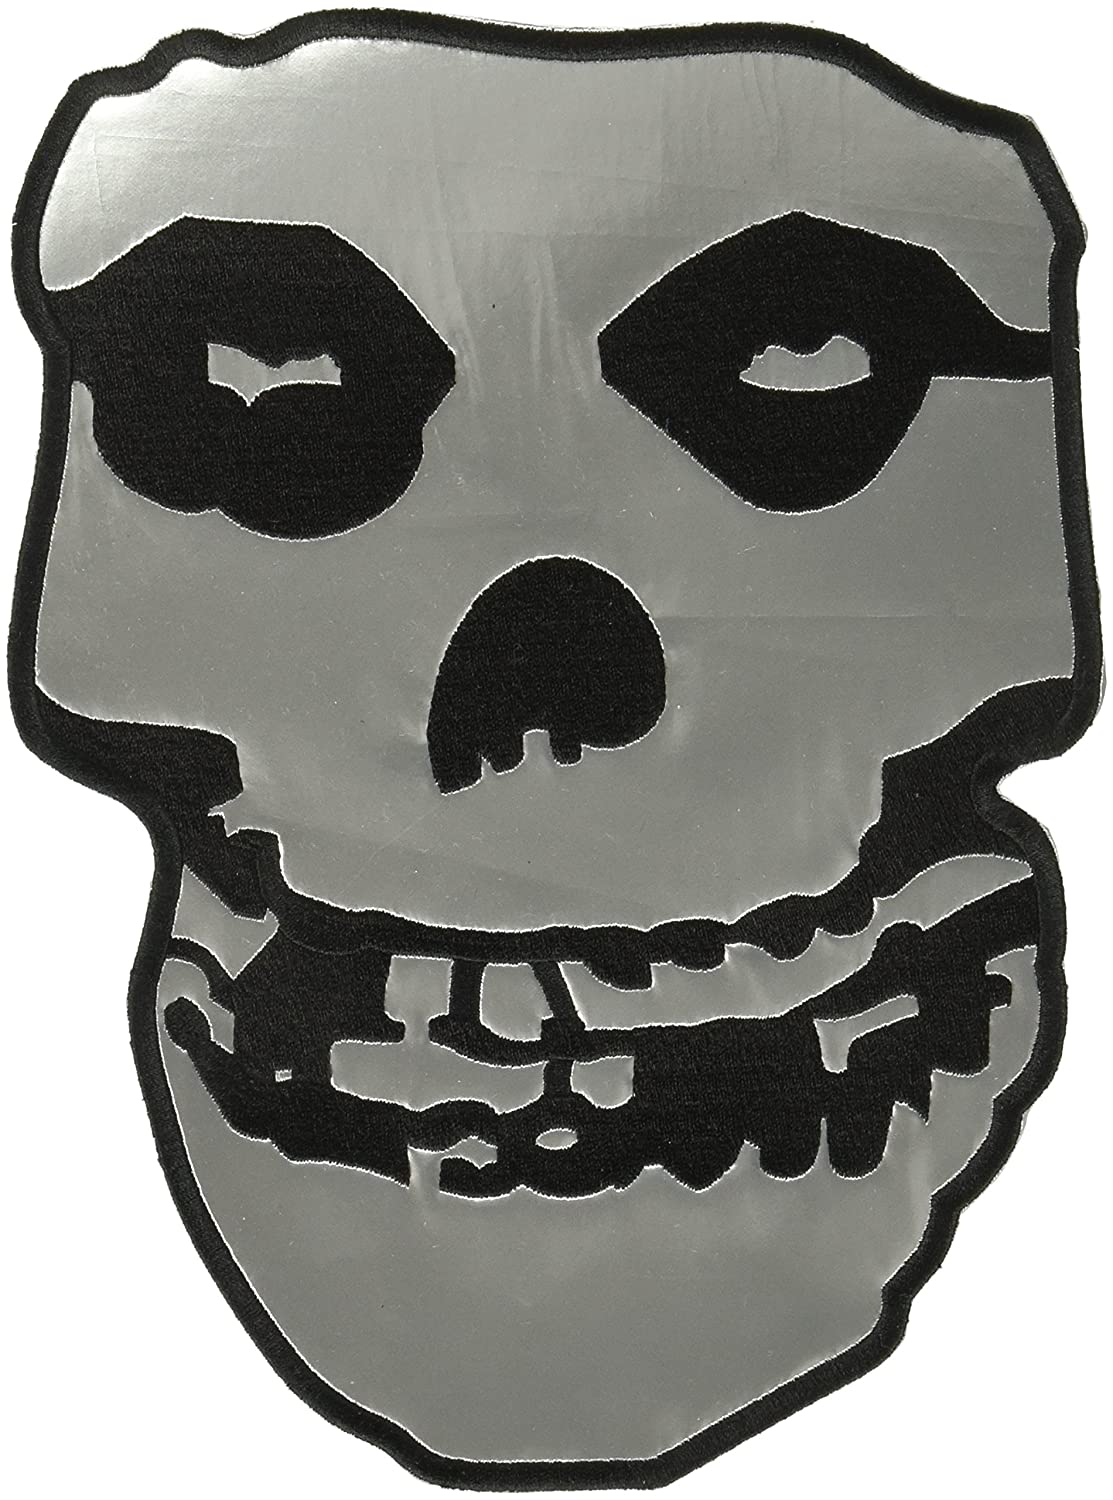 25cm Large Silver Vinyl Back Patch with Embroidered Edges The Misfits